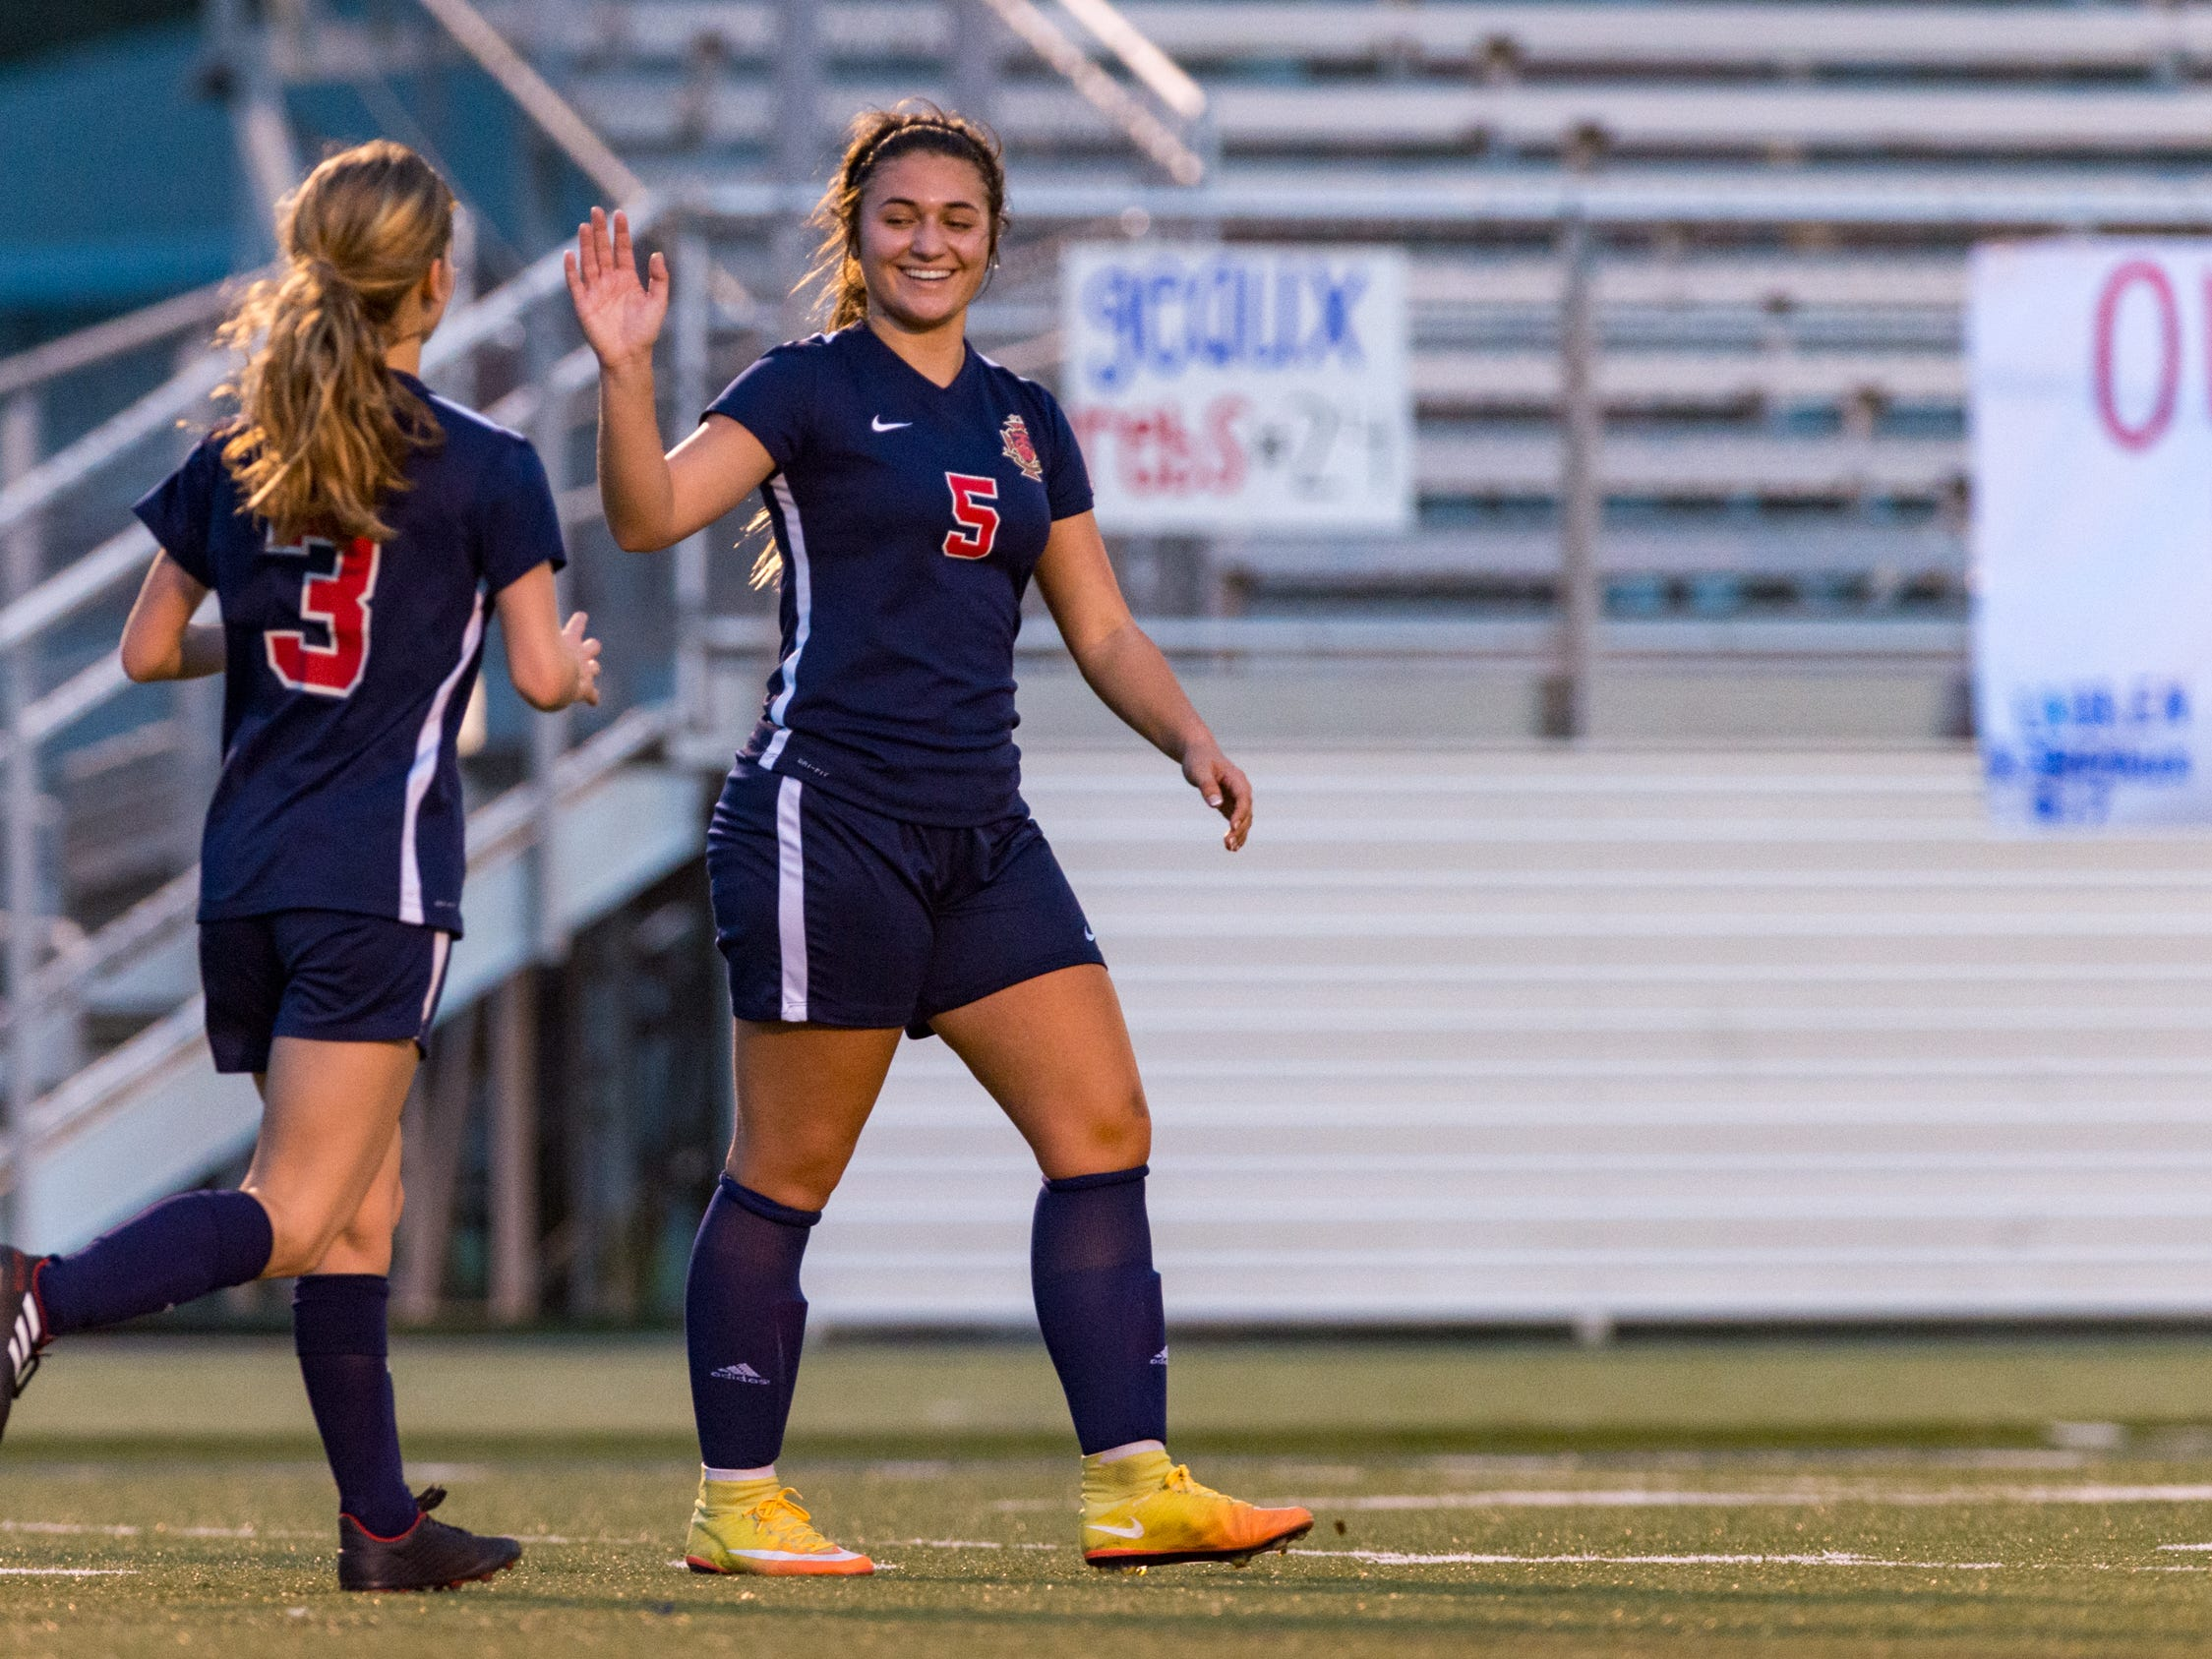 Julia Colette high five to Emily Sonnier after scoring a goal as Teurlings Catholic girls soccer takes down Holy Savior Menard in the quarterfinals of the LHSAA soccer playoffs. Monday, Feb. 11, 2019.